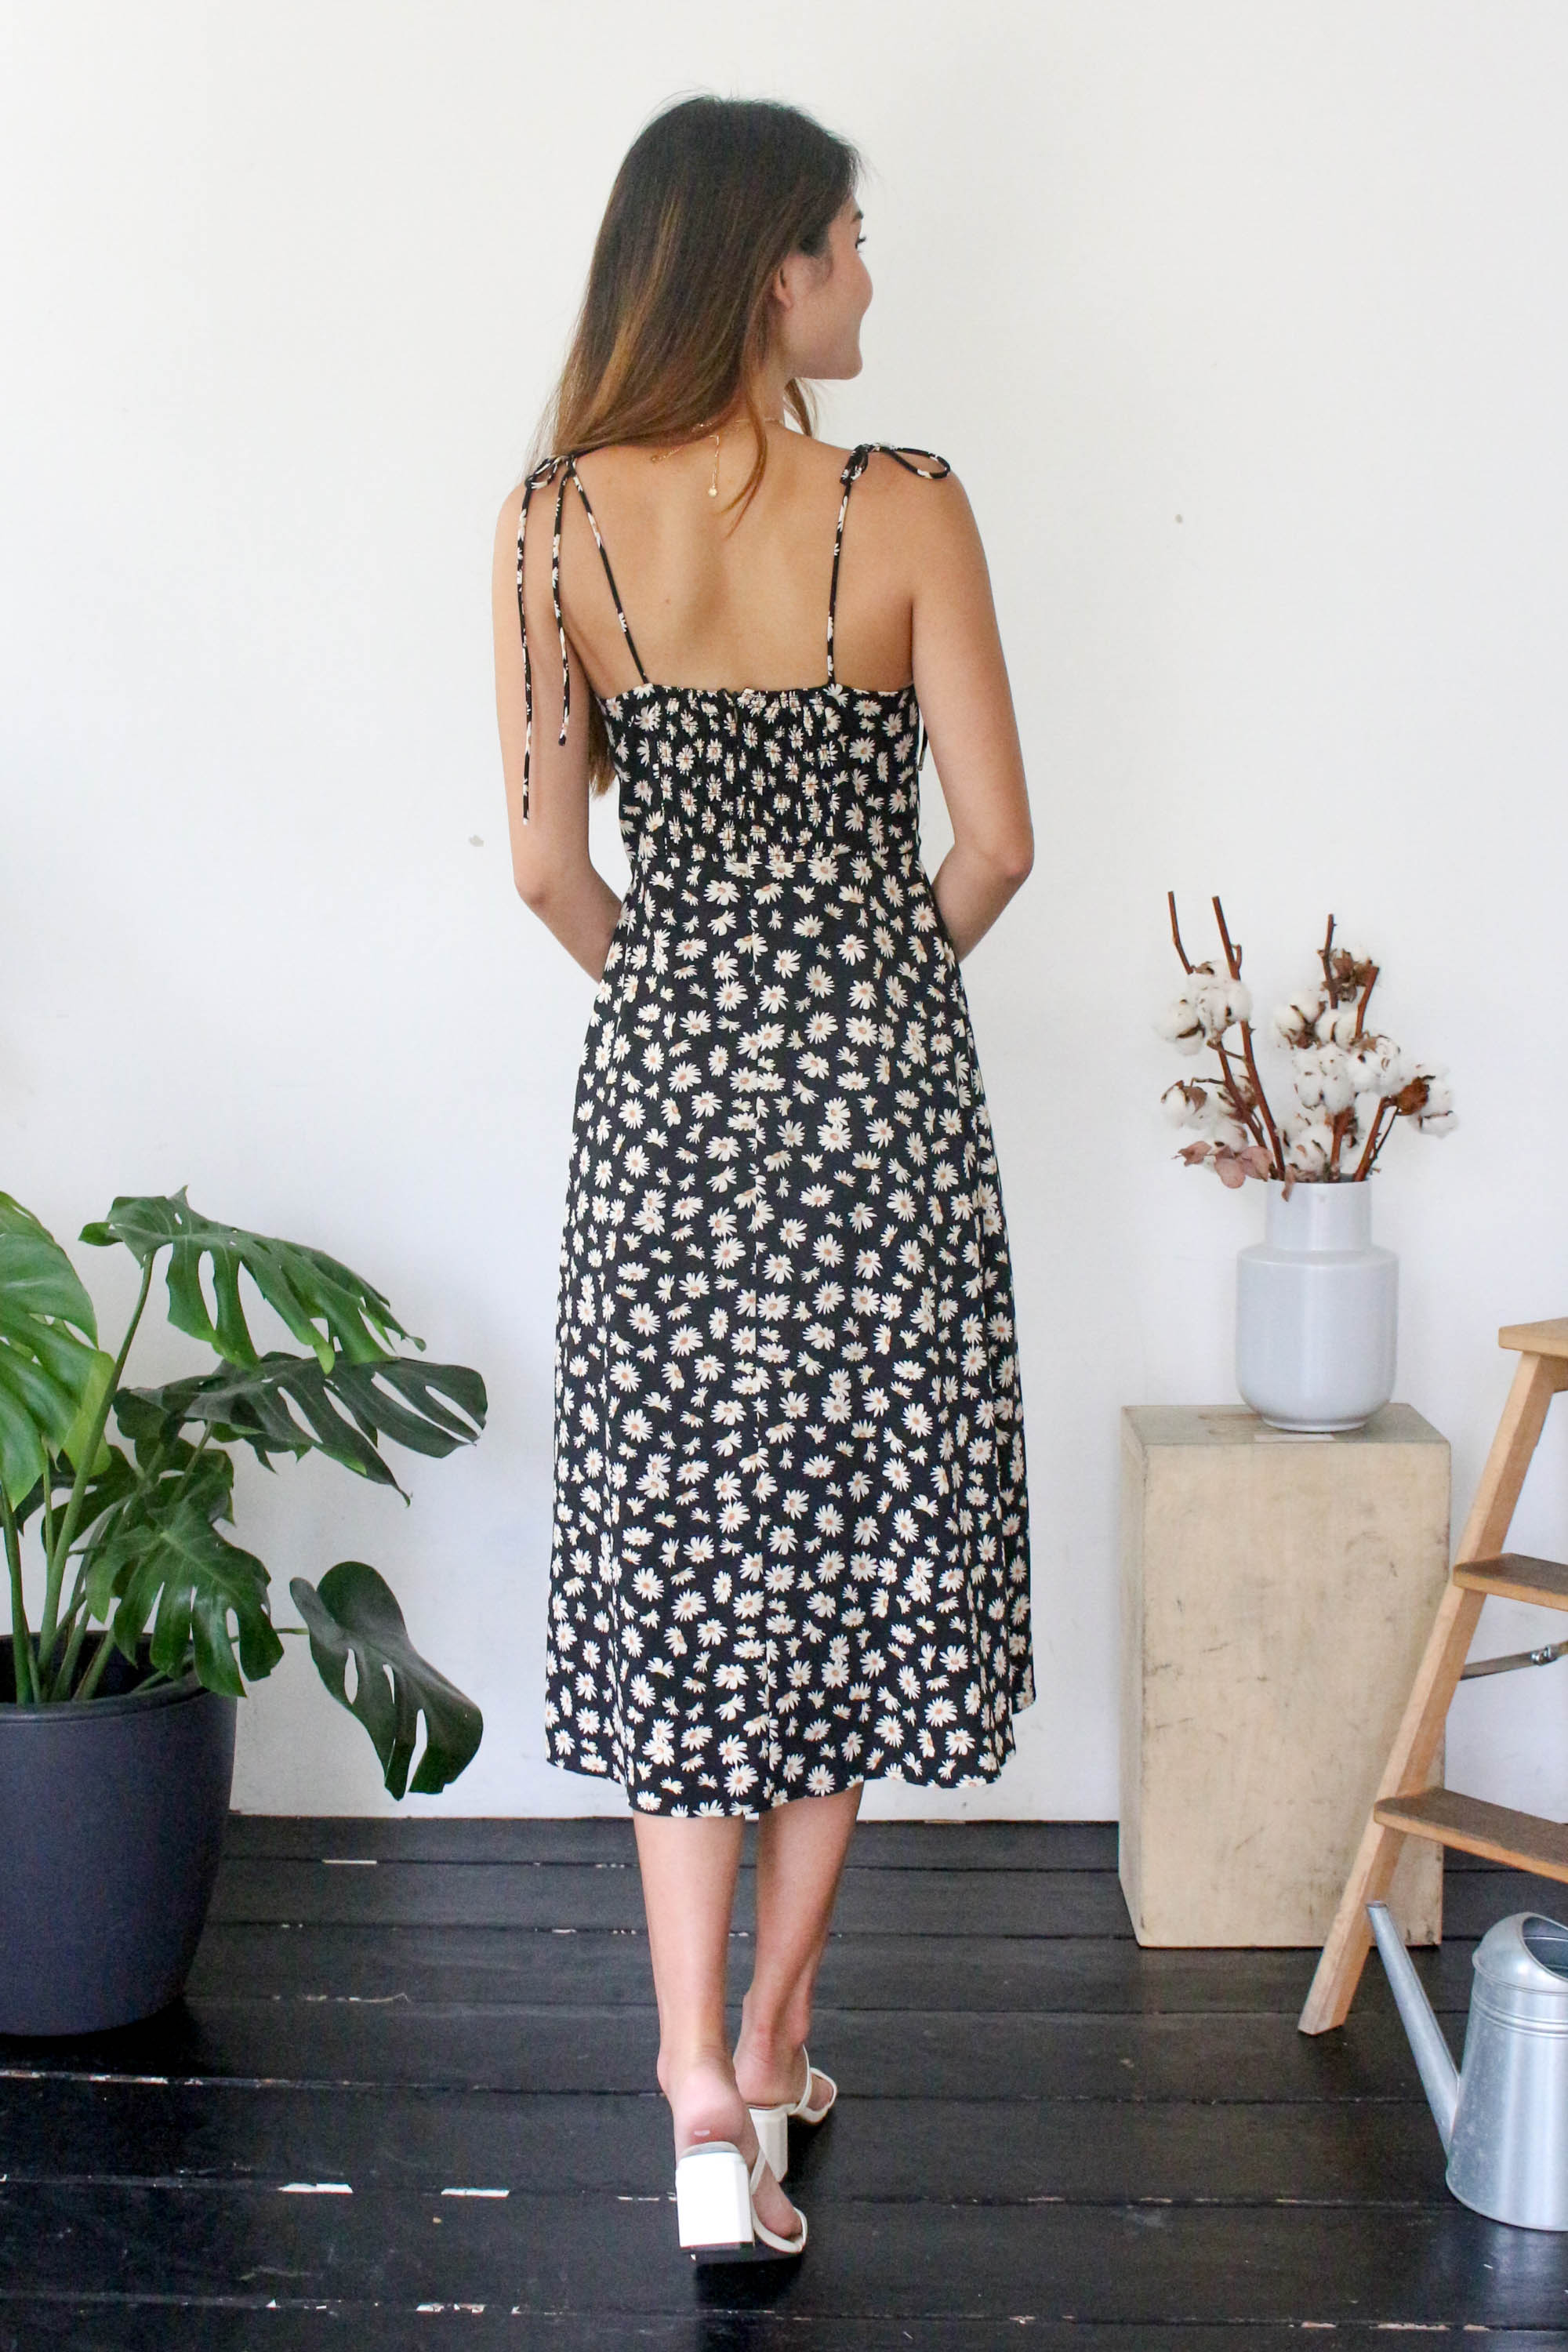 Bethany Floral Dress in Black